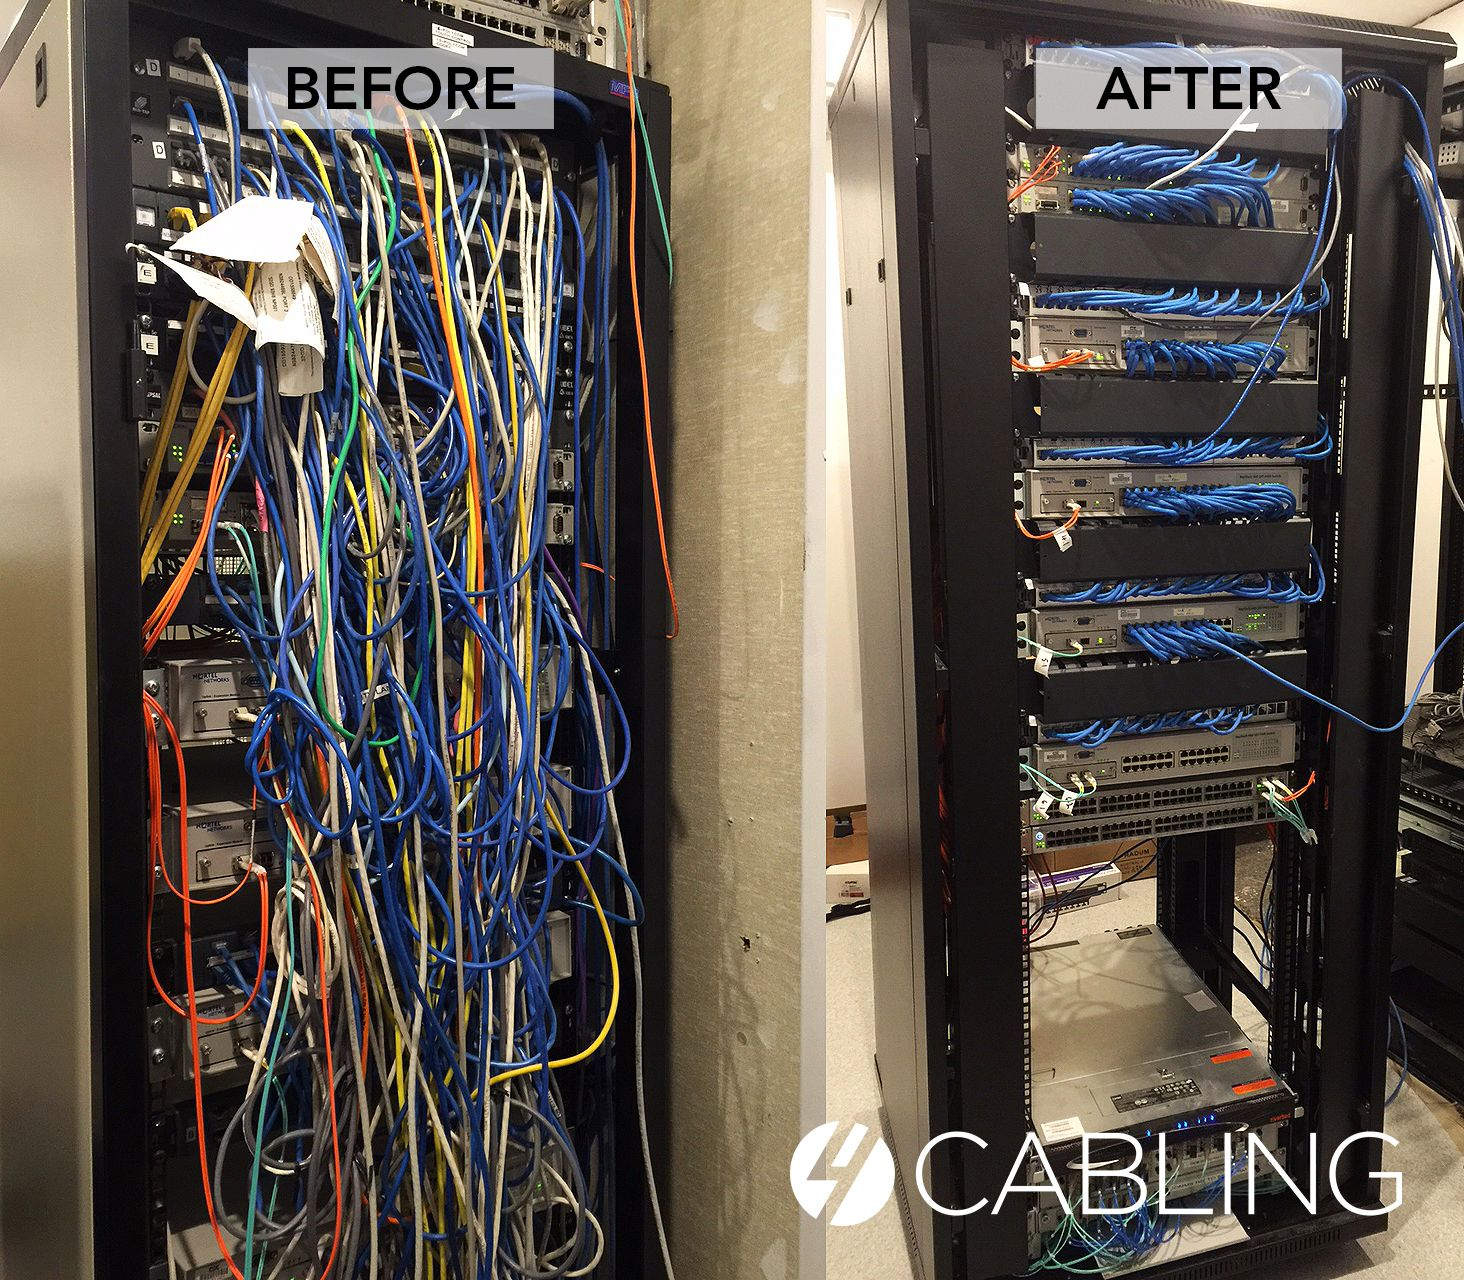 hight resolution of special thanks to our customer marc f for sending through this fantastic before after cabling job he completed over the weekend wow is all we can say